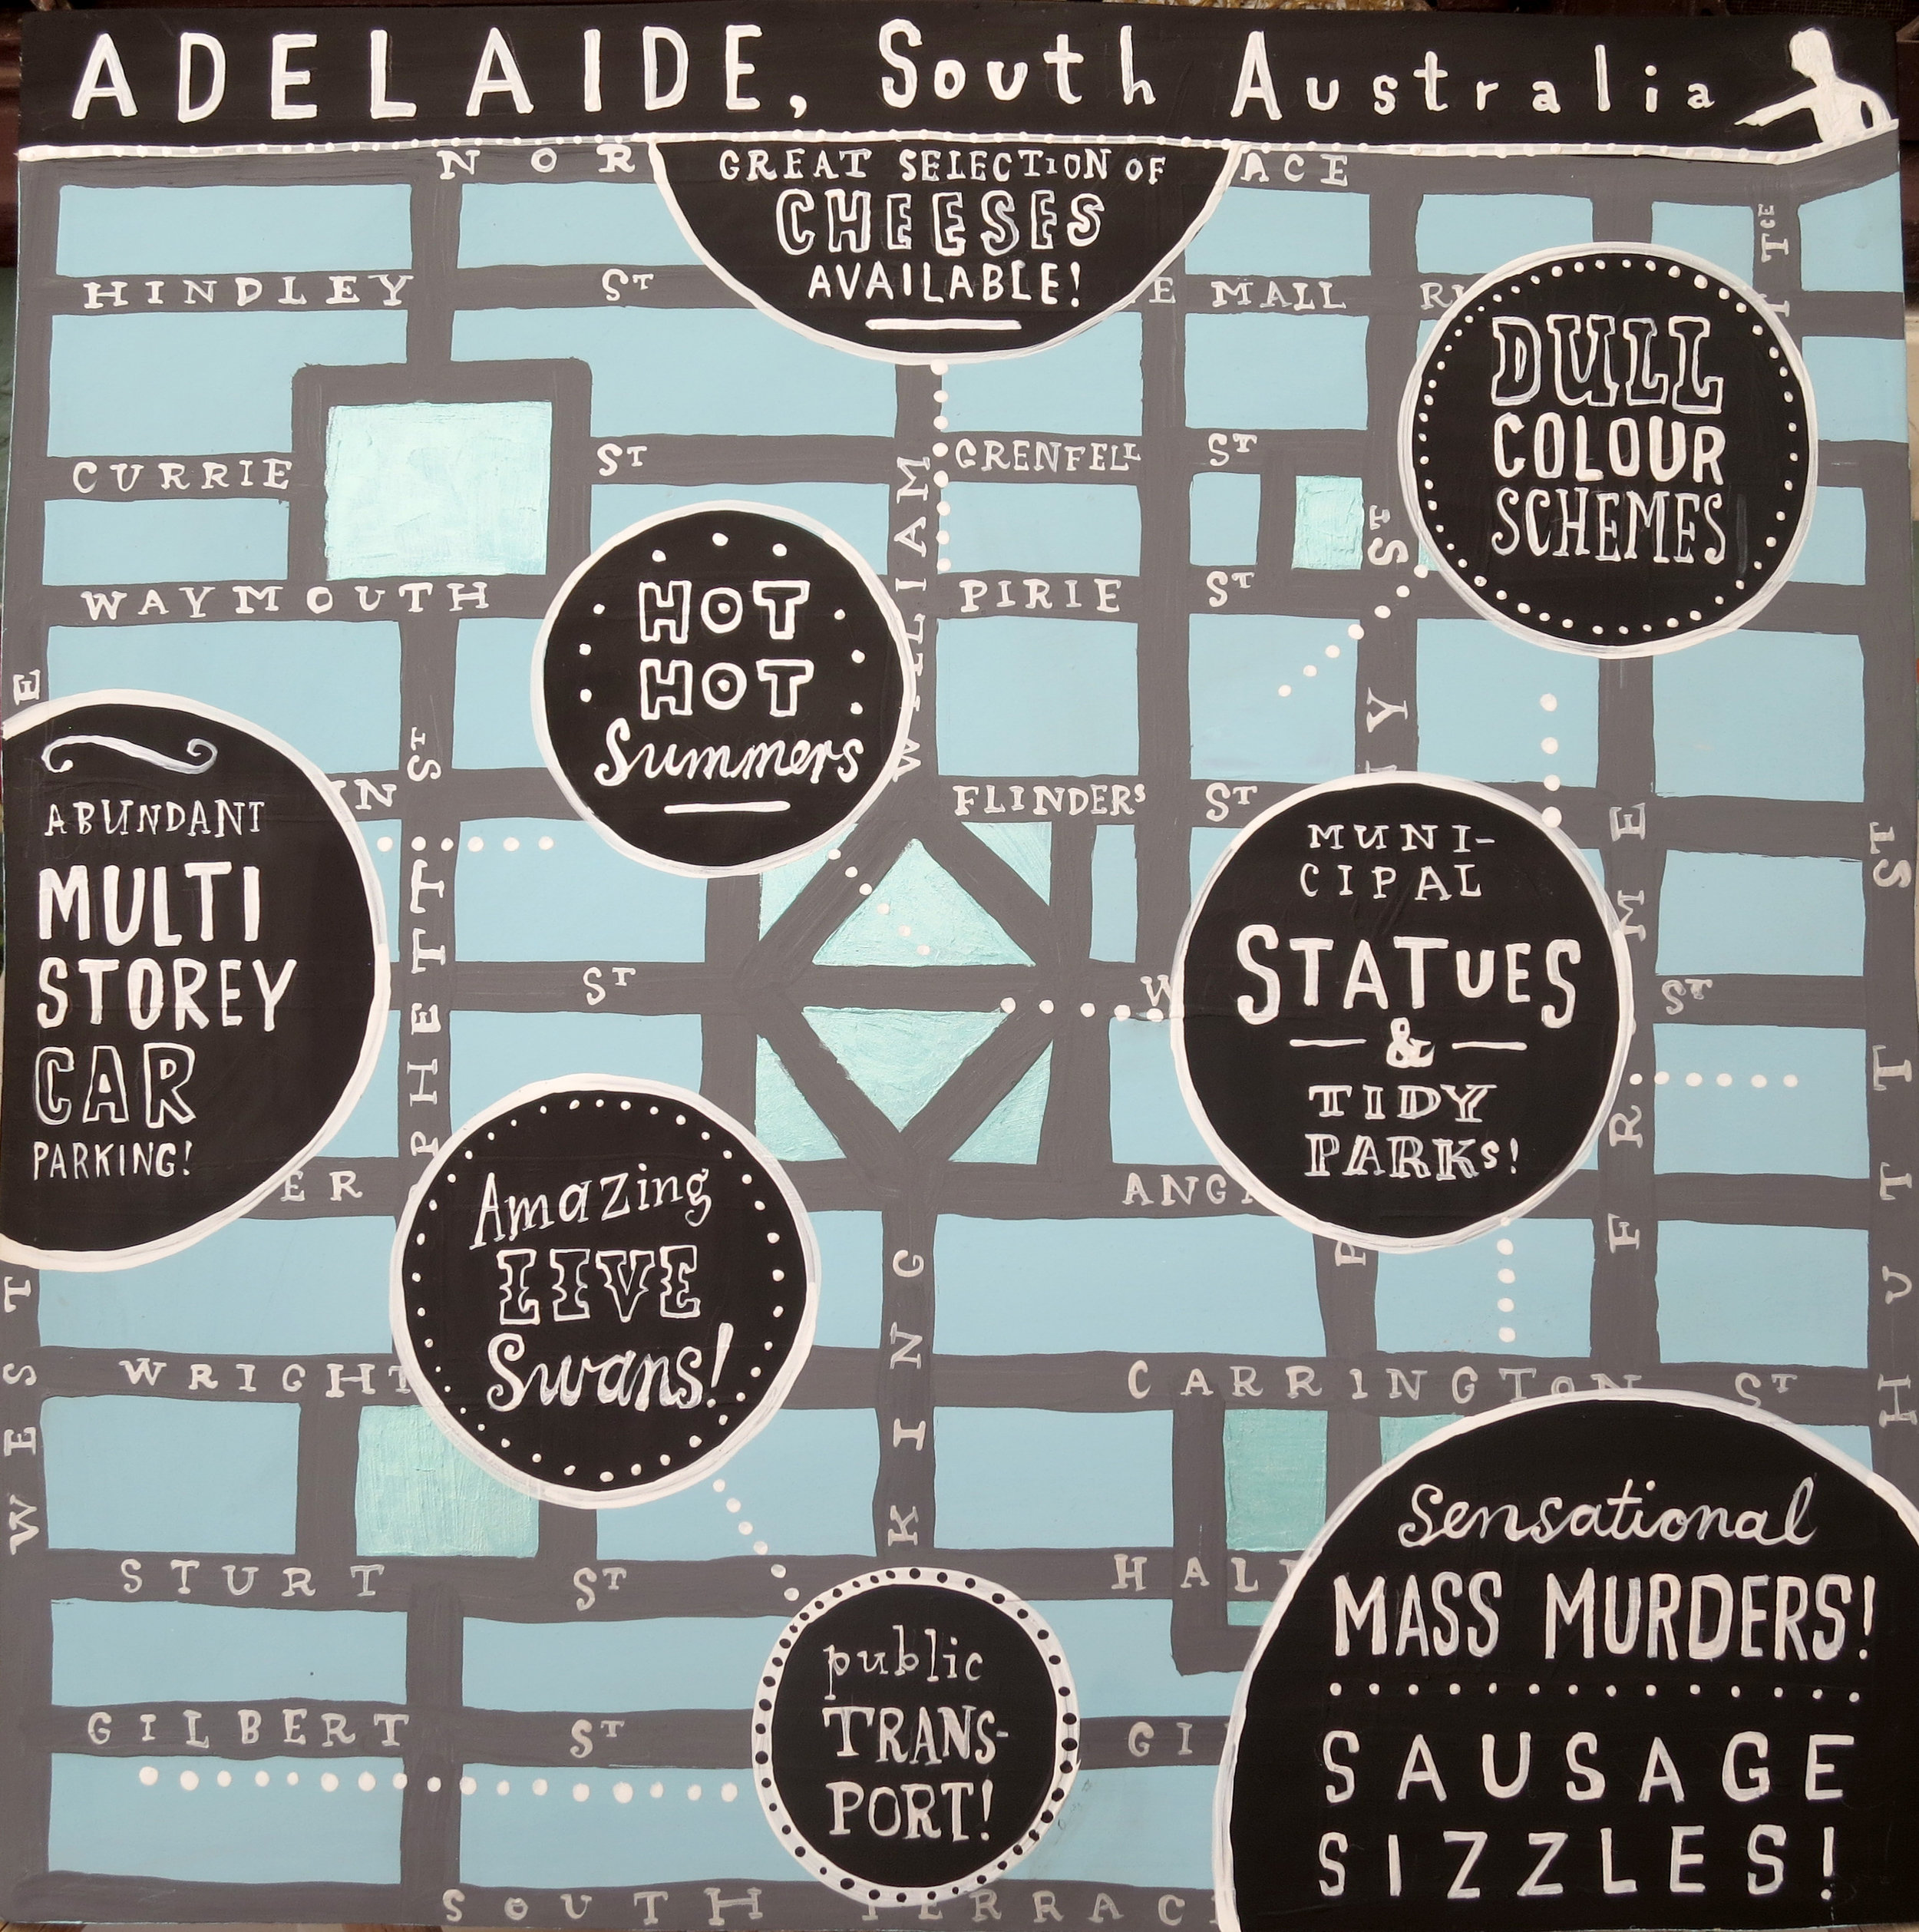 Copy of Adelaide